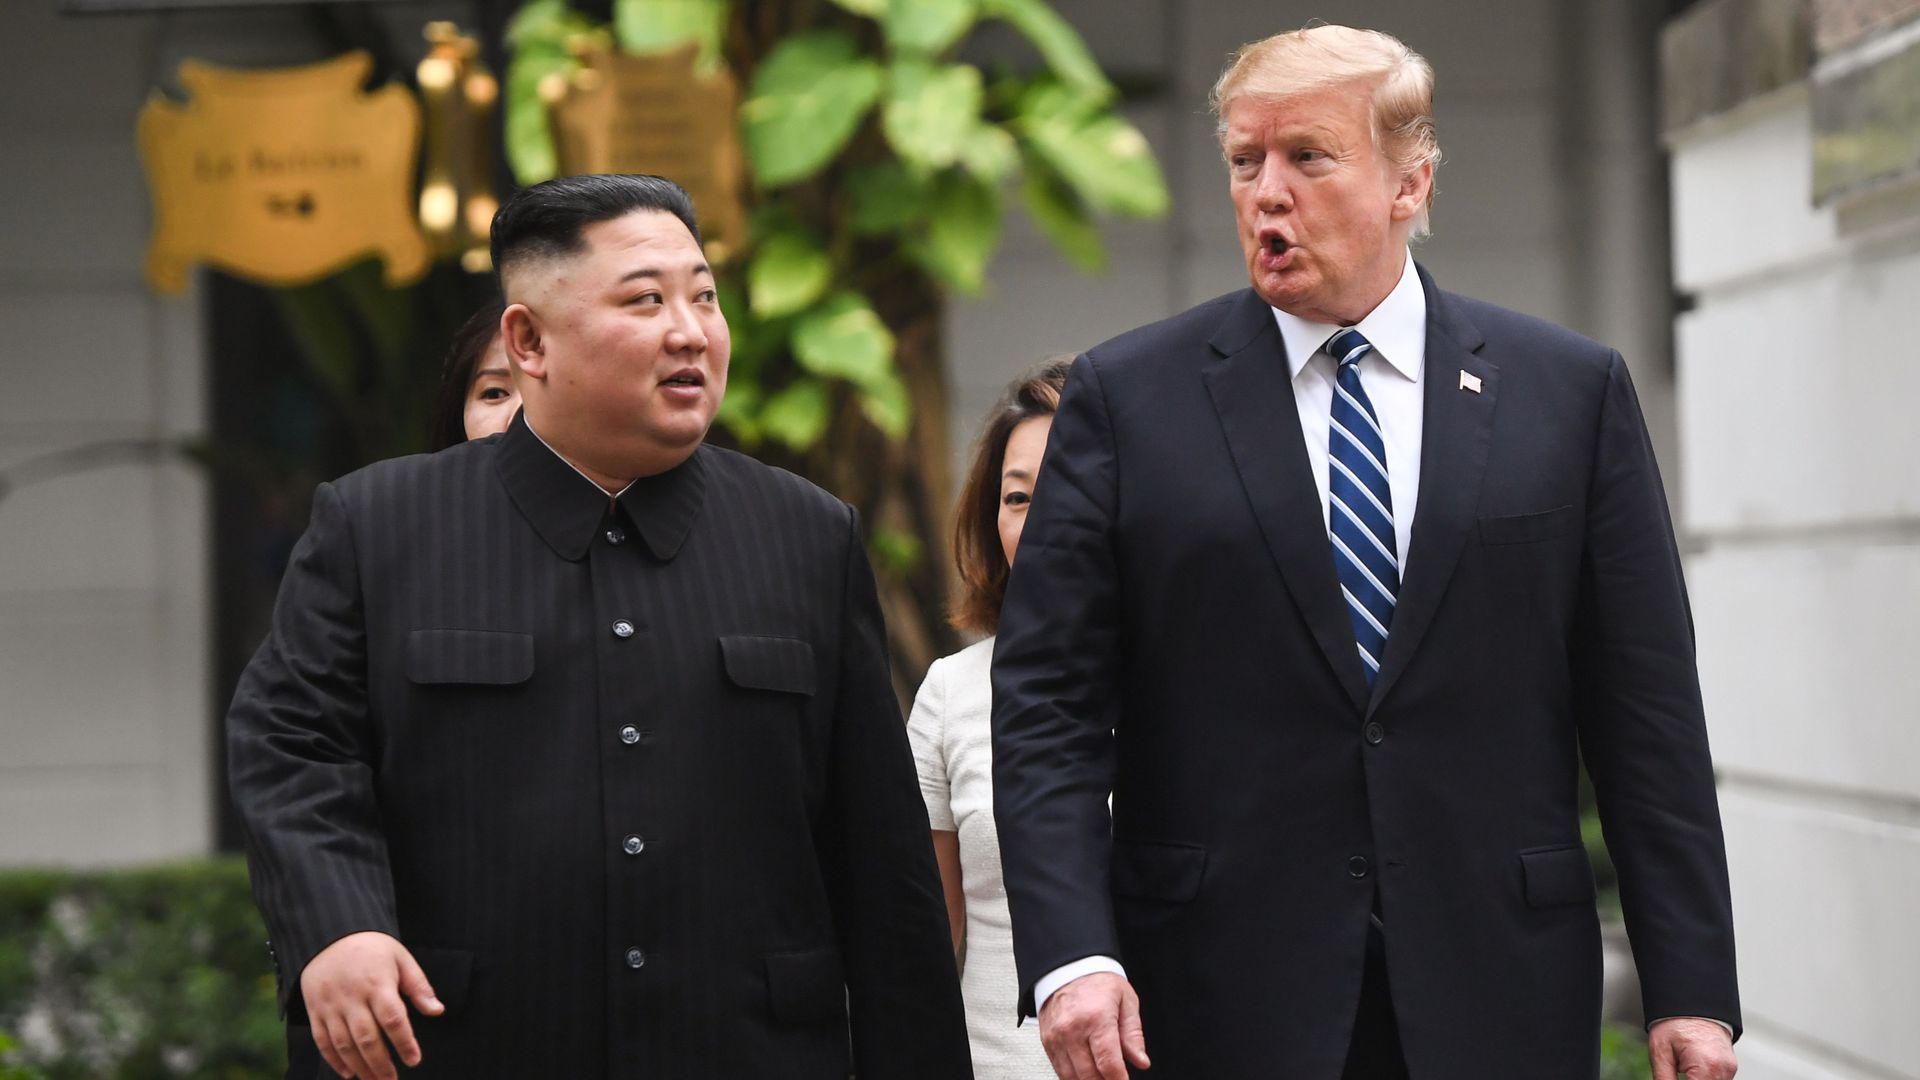 In this image, President Trump and Chairman Kim walk outside next to each other.